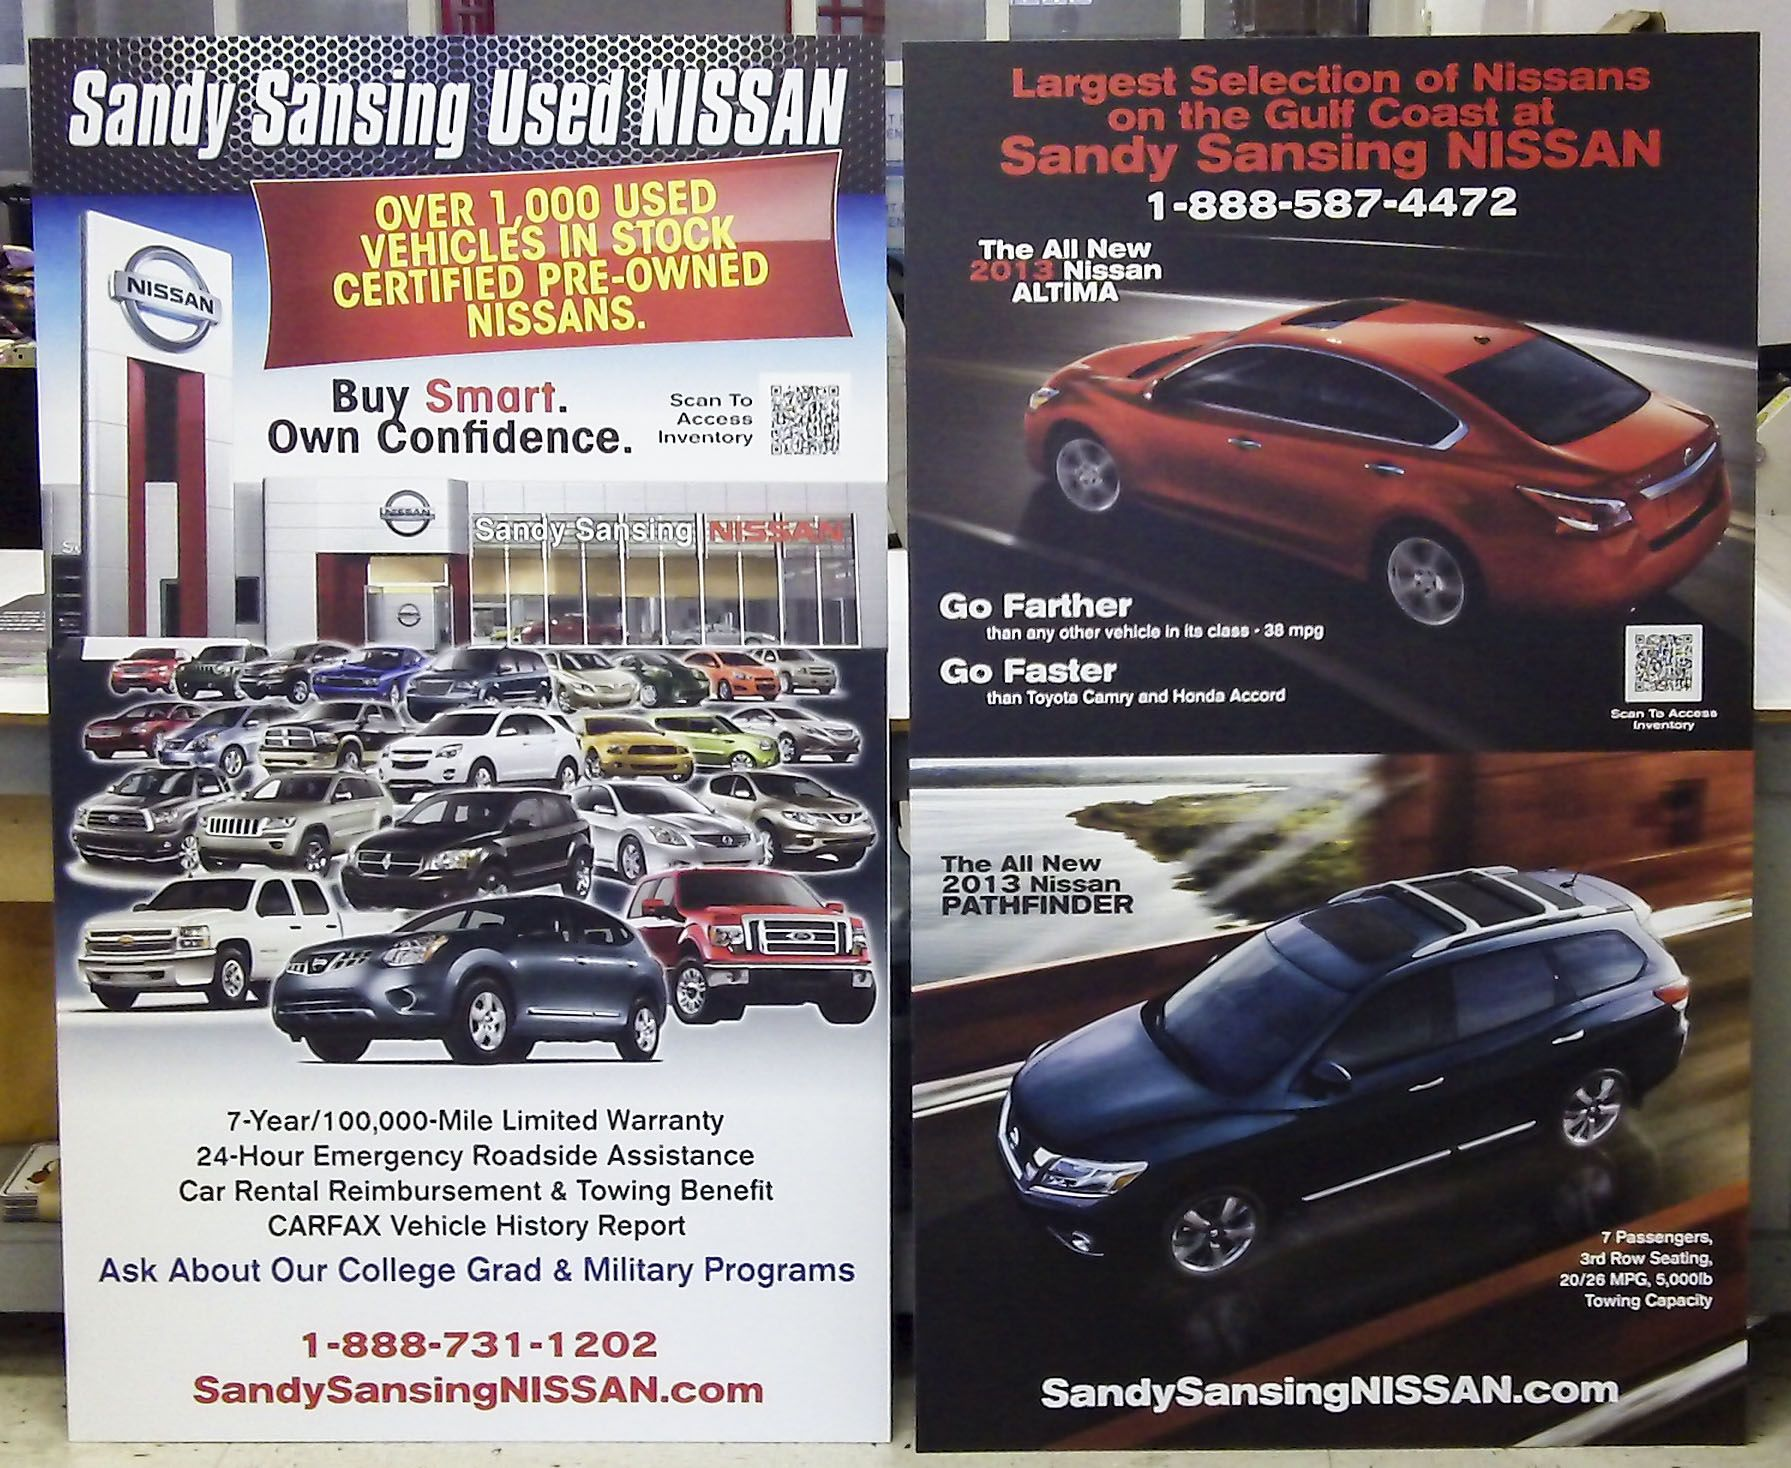 Sandy Sansing Used Nissan Poster By Pensacola Sign In Pensacola, Florida.  Banners And Posters Draw Attention To Your Business, Product Or Event  Effectively.